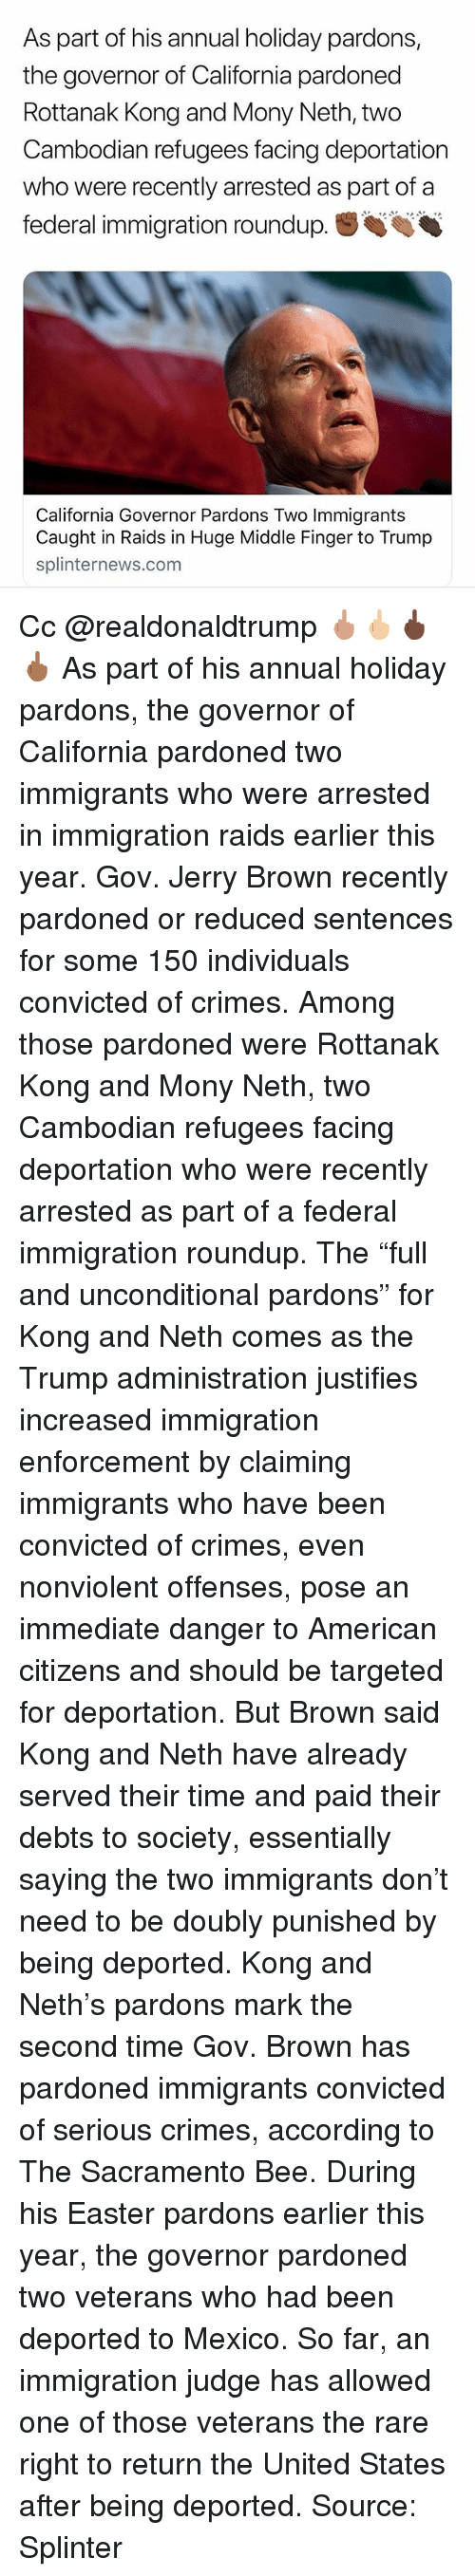 "Sacramento: As part of his annual holiday pardons,  the governor of California pardoned  Rottanak Kong and Mony Neth, two  Cambodian refugees facing deportation  who were recently arrested as part of a  federal immigration roundup.  California Governor Pardons Two Immigrants  Caught in Raids in Huge Middle Finger to Trump  splinternews.com Cc @realdonaldtrump 🖕🏽🖕🏼🖕🏿🖕🏾 As part of his annual holiday pardons, the governor of California pardoned two immigrants who were arrested in immigration raids earlier this year. Gov. Jerry Brown recently pardoned or reduced sentences for some 150 individuals convicted of crimes. Among those pardoned were Rottanak Kong and Mony Neth, two Cambodian refugees facing deportation who were recently arrested as part of a federal immigration roundup. The ""full and unconditional pardons"" for Kong and Neth comes as the Trump administration justifies increased immigration enforcement by claiming immigrants who have been convicted of crimes, even nonviolent offenses, pose an immediate danger to American citizens and should be targeted for deportation. But Brown said Kong and Neth have already served their time and paid their debts to society, essentially saying the two immigrants don't need to be doubly punished by being deported. Kong and Neth's pardons mark the second time Gov. Brown has pardoned immigrants convicted of serious crimes, according to The Sacramento Bee. During his Easter pardons earlier this year, the governor pardoned two veterans who had been deported to Mexico. So far, an immigration judge has allowed one of those veterans the rare right to return the United States after being deported. Source: Splinter"